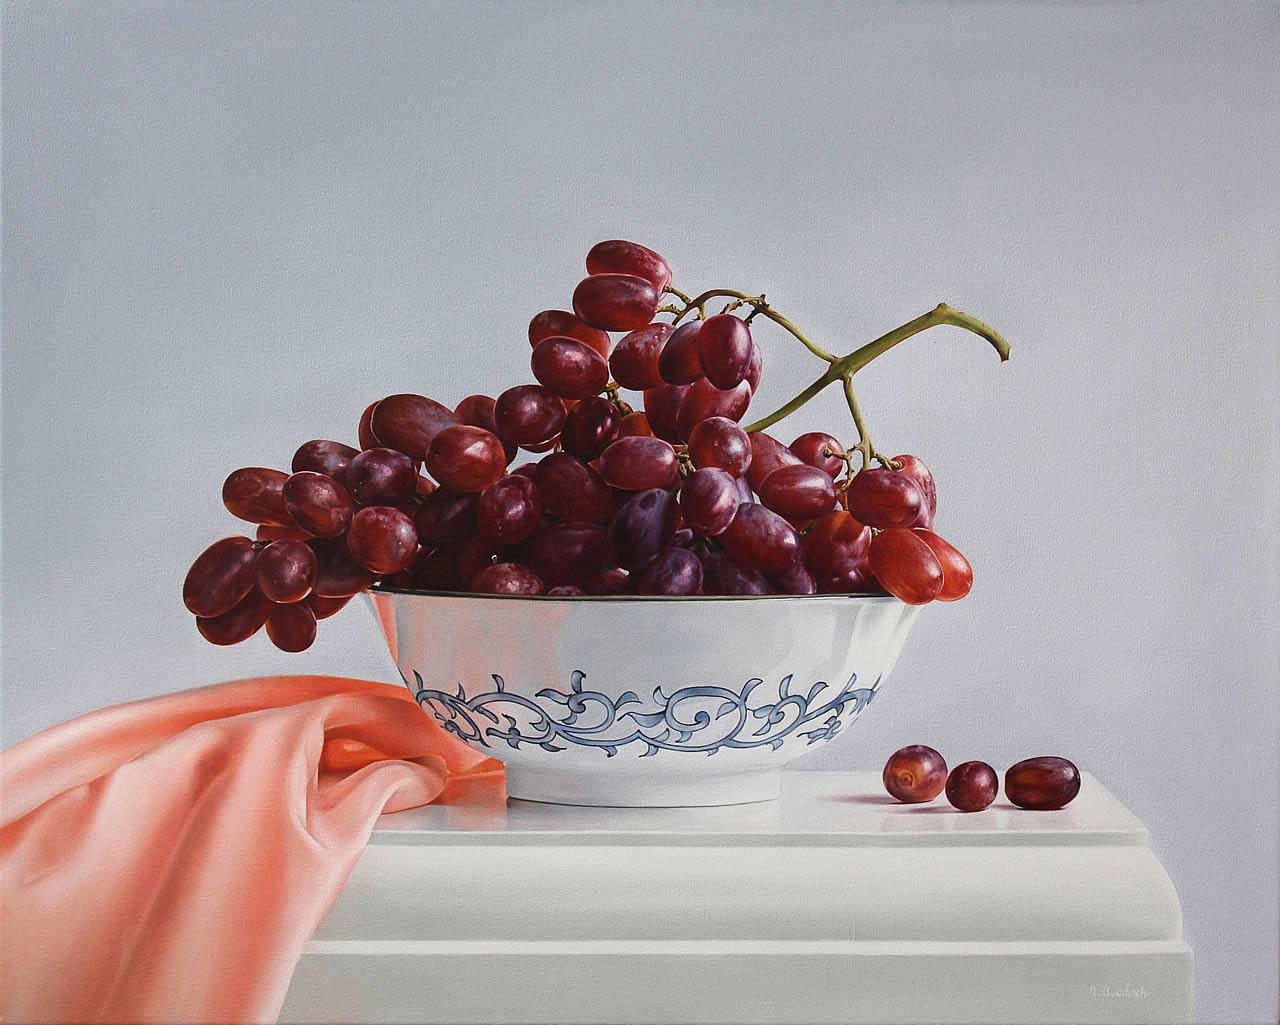 Bowl of Grapes